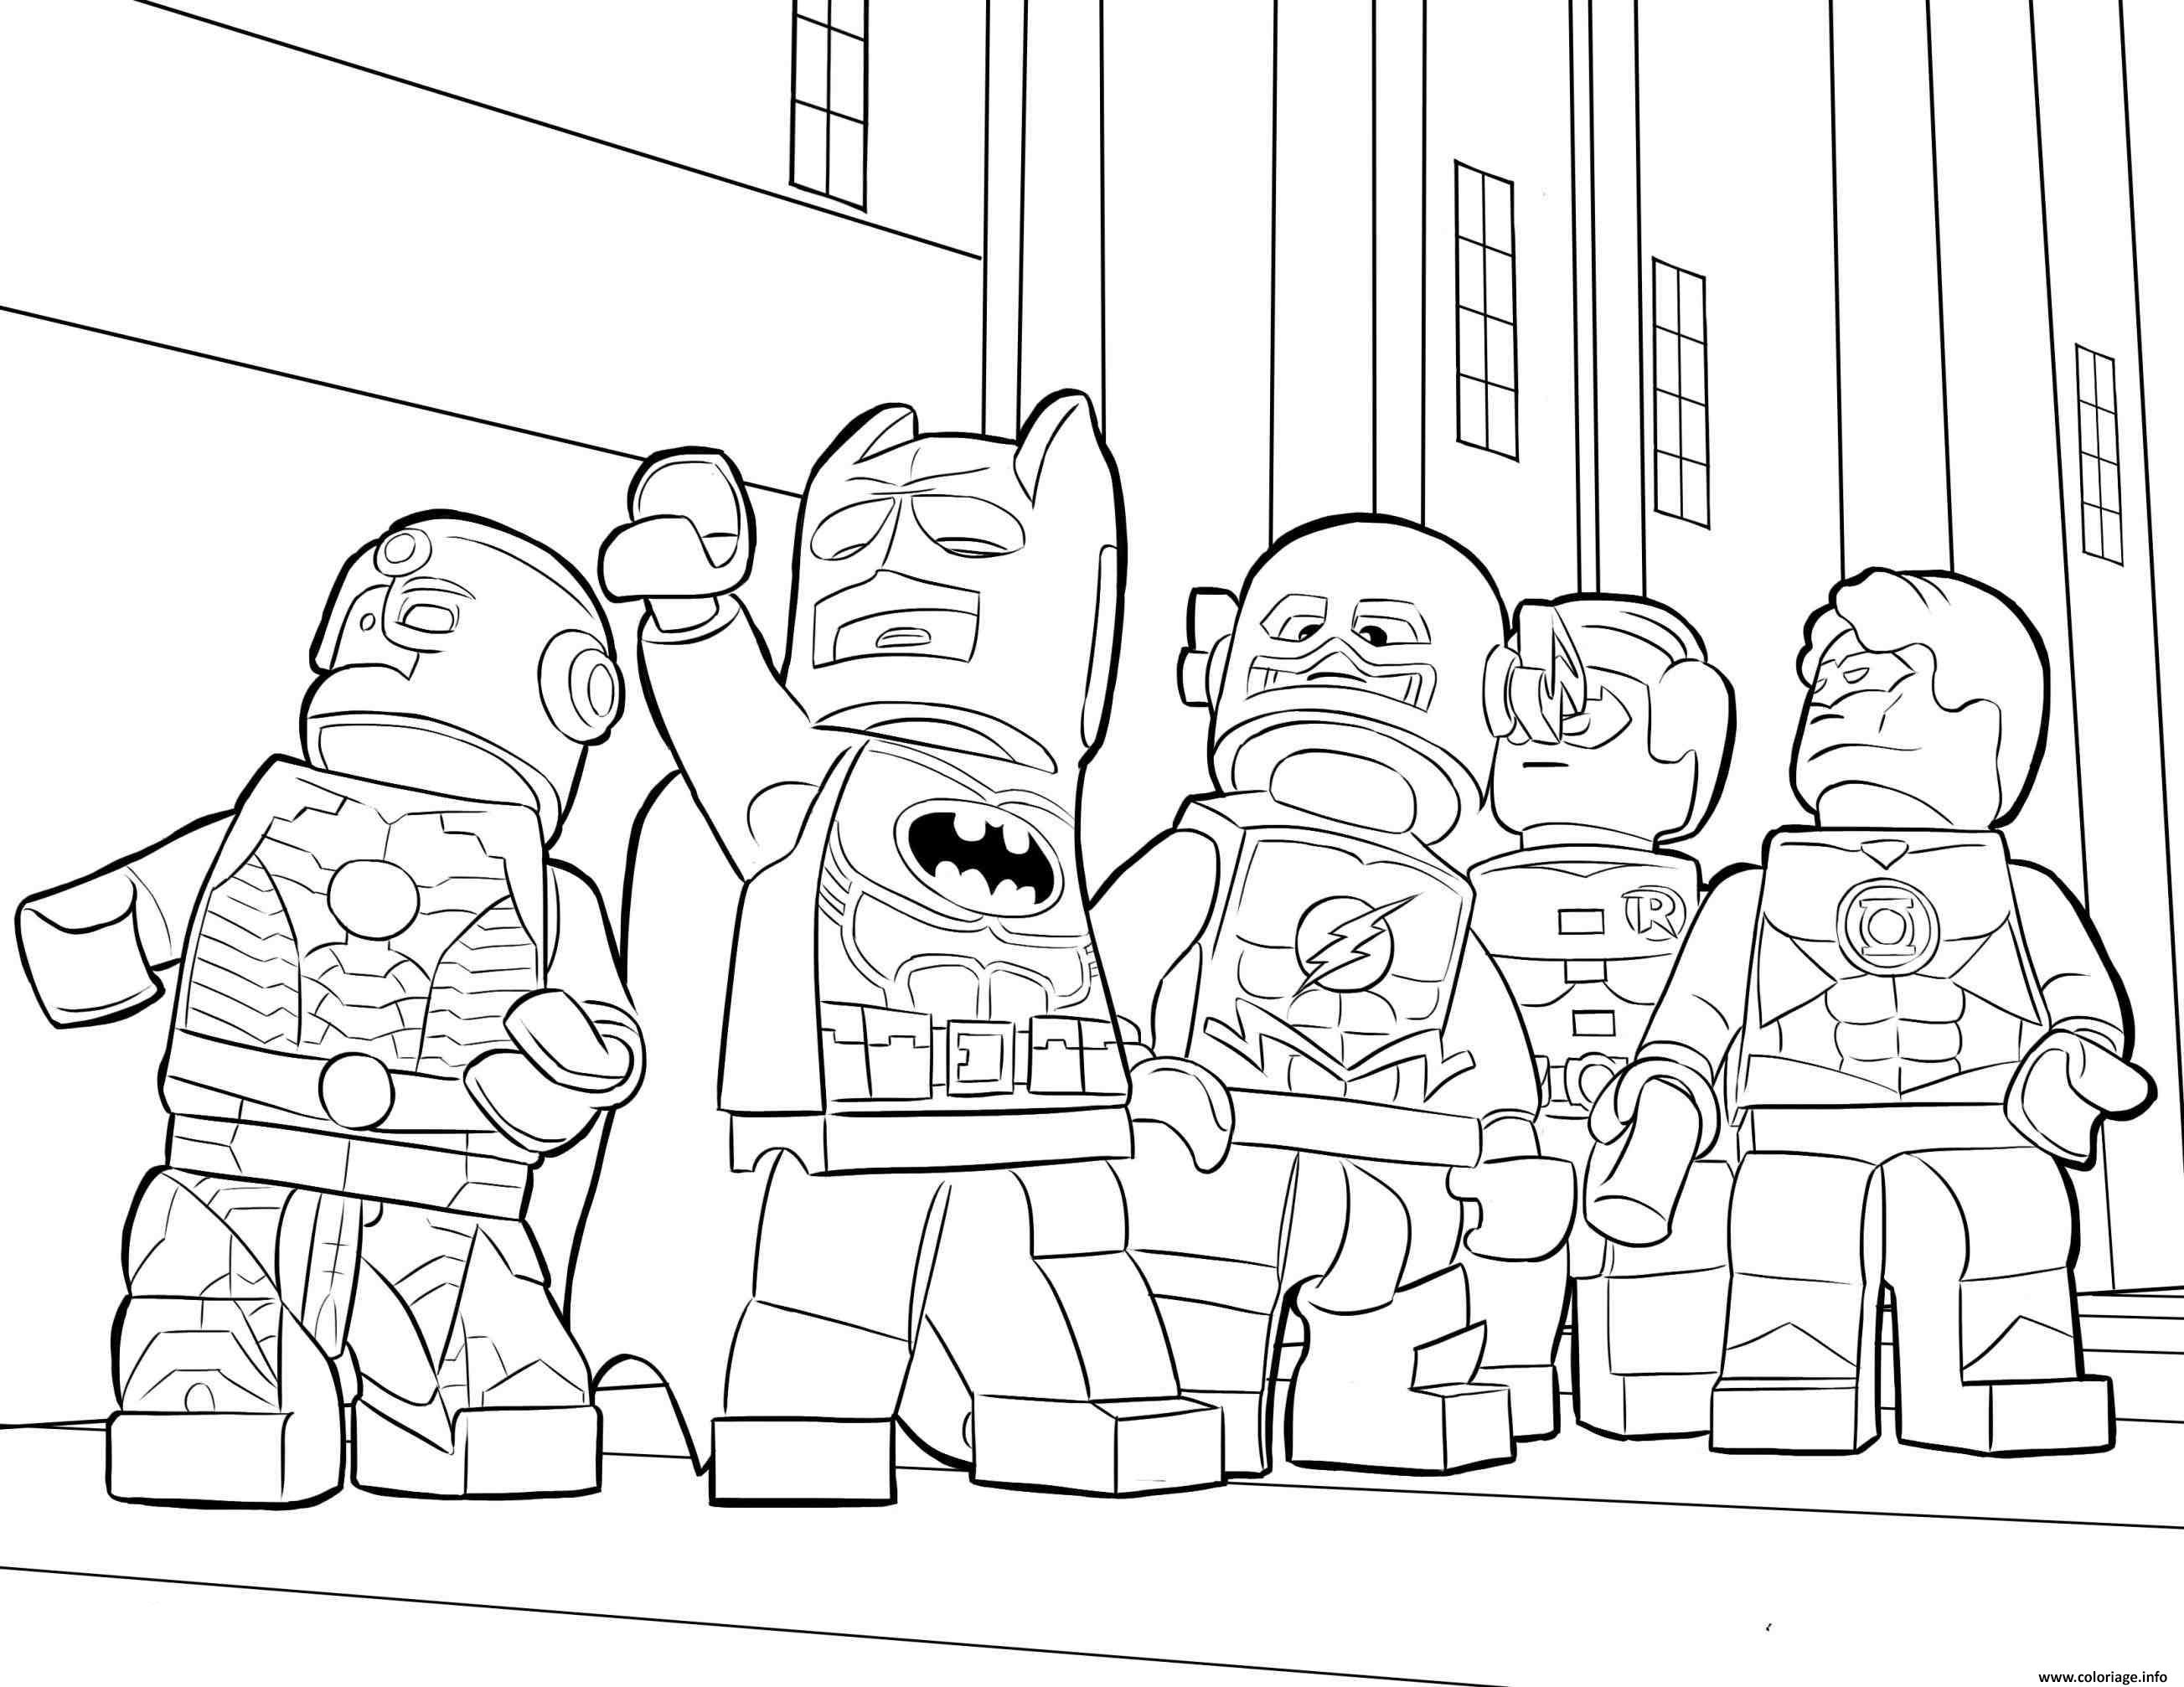 Coloriage Flash Lego Et Super Heros Batman Ironman Dessin à Imprimer